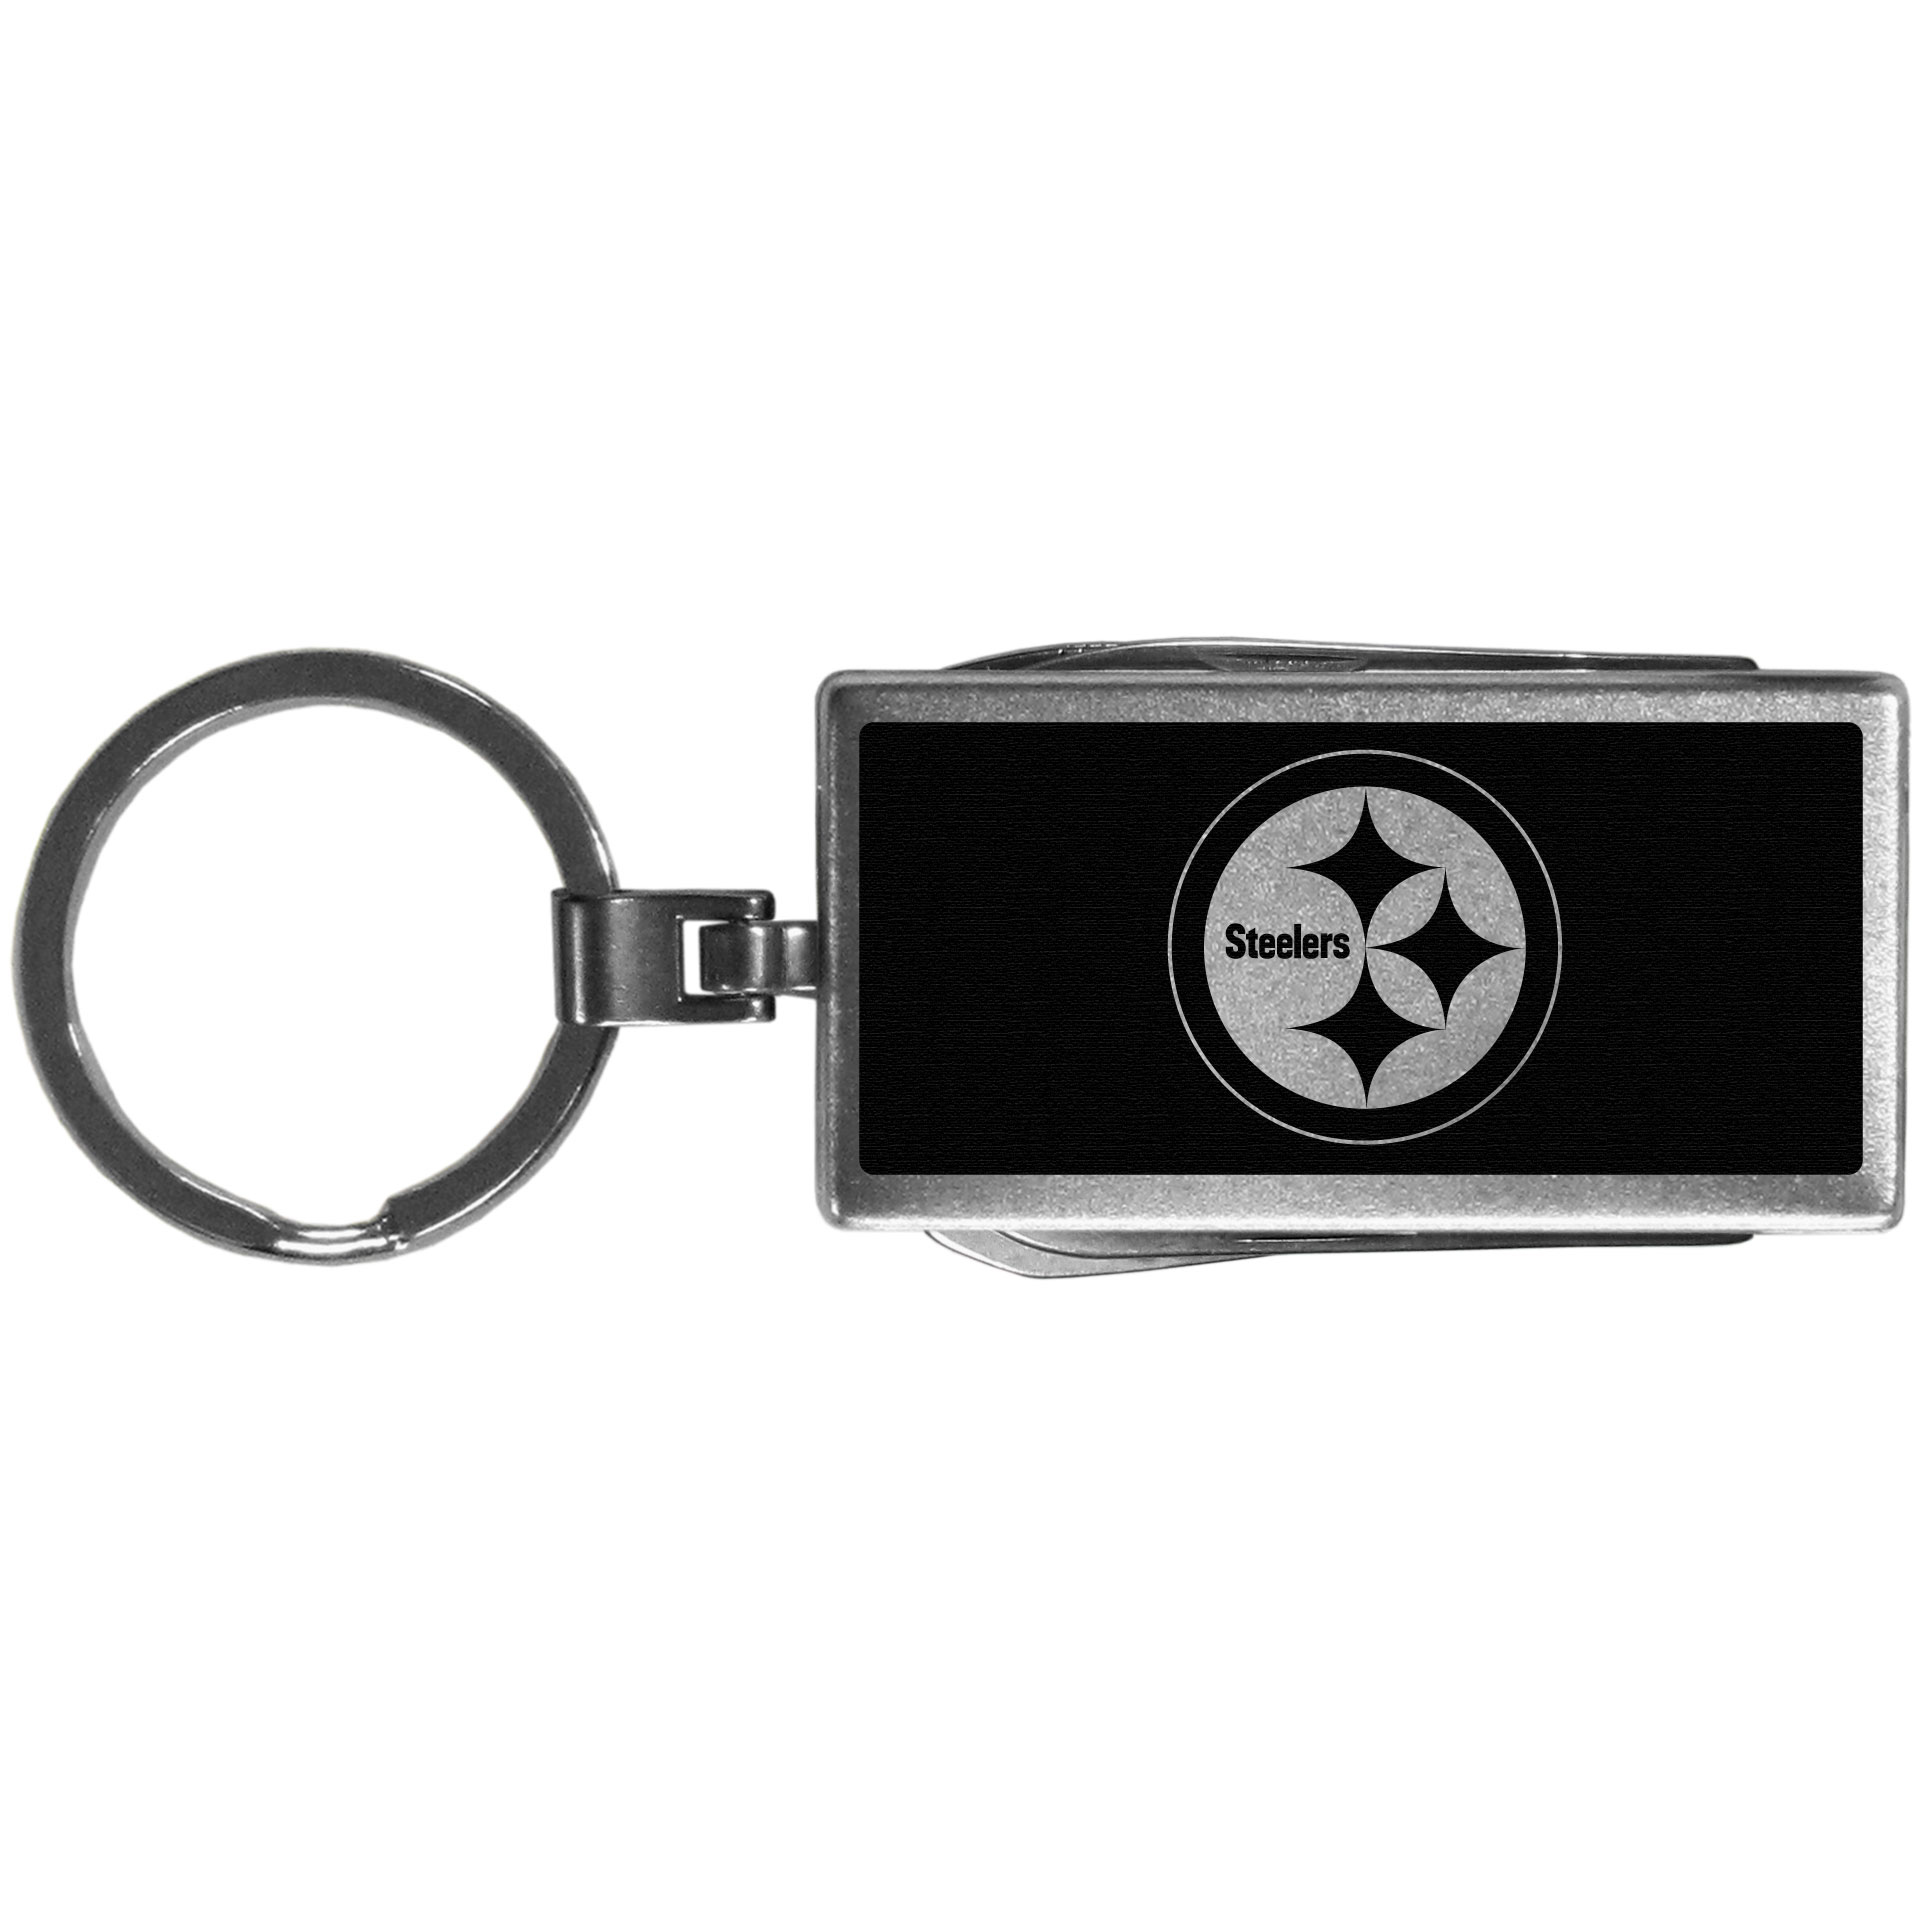 Pittsburgh Steelers Multi-tool Key Chain, Black - Be the hero at the tailgate, camping, or on a Friday night with your Pittsburgh Steelers Multi-Tool Keychain which comes complete with bottle opener, scissors, knife, nail file and screw driver. Be it opening a package or a beverage Siskiyou's Multi-Tool Keychain goes wherever your keys do. The keychain hangs at 4 inches long when closed.